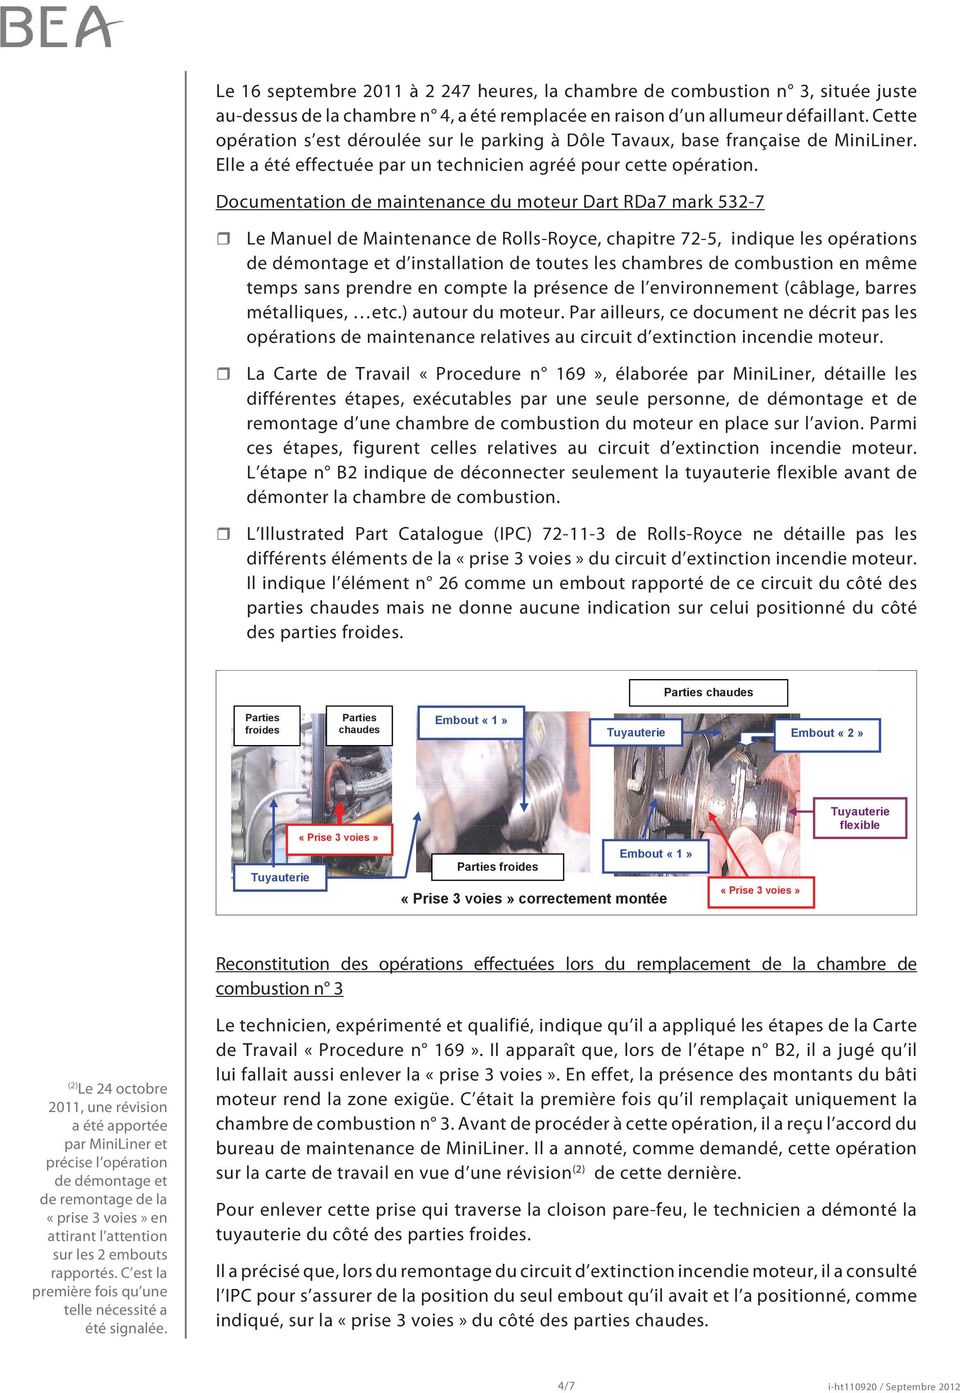 L opérateur applique le programme de maintenance défini par le document Documentation «F27ManPlan issue de maintenance 3 rev 3» du du 31 mars moteur 2011 Dart qui RDa7 a été mark approuvé 532-7 par l